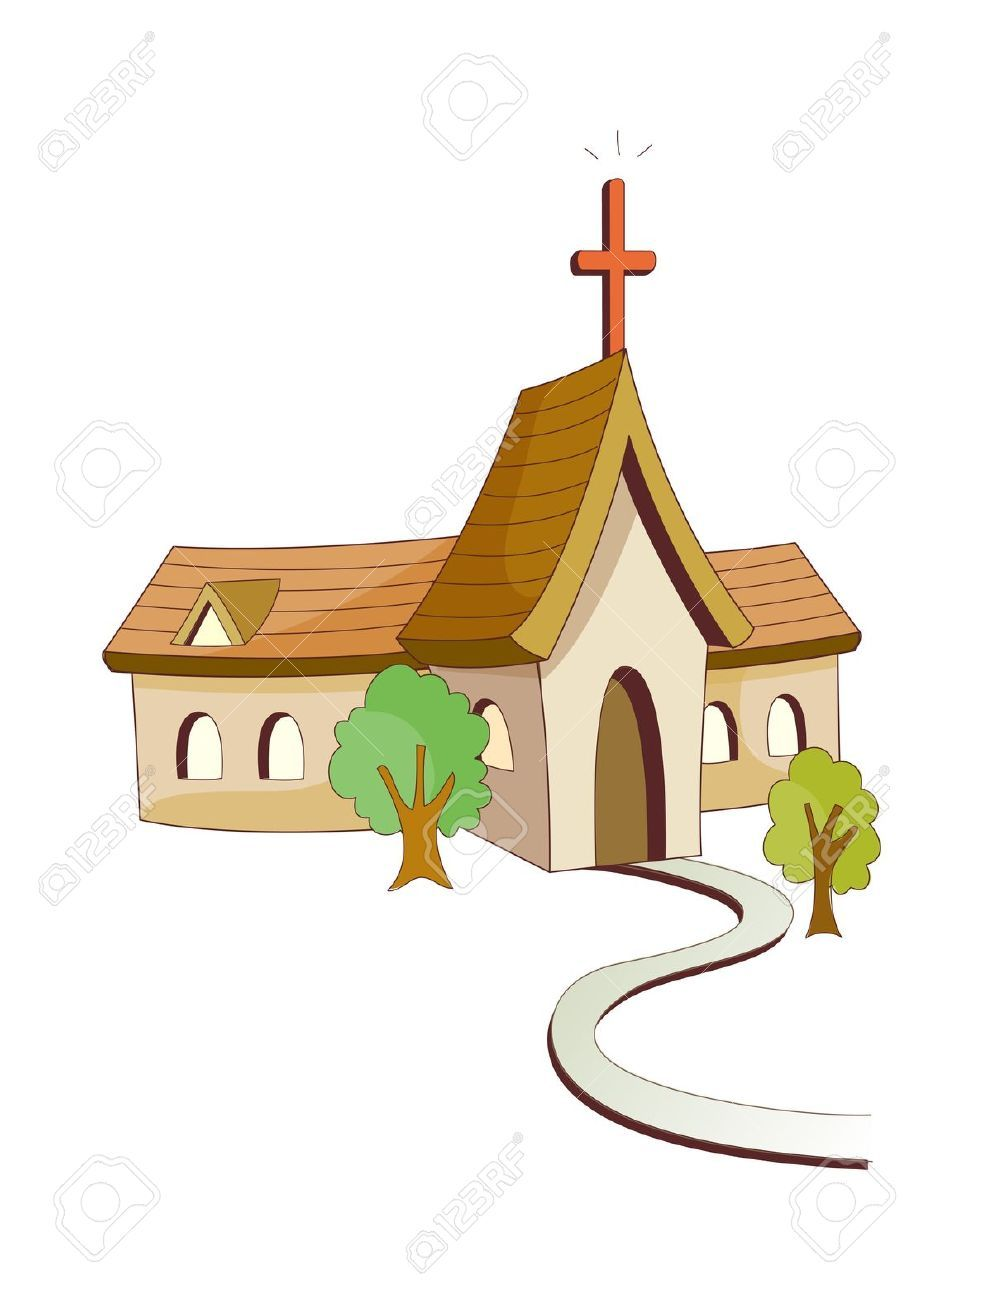 Church building roof clipart banner royalty free stock Pin by Oscar Daniels on church   Vector icons, Clip art, Church building banner royalty free stock